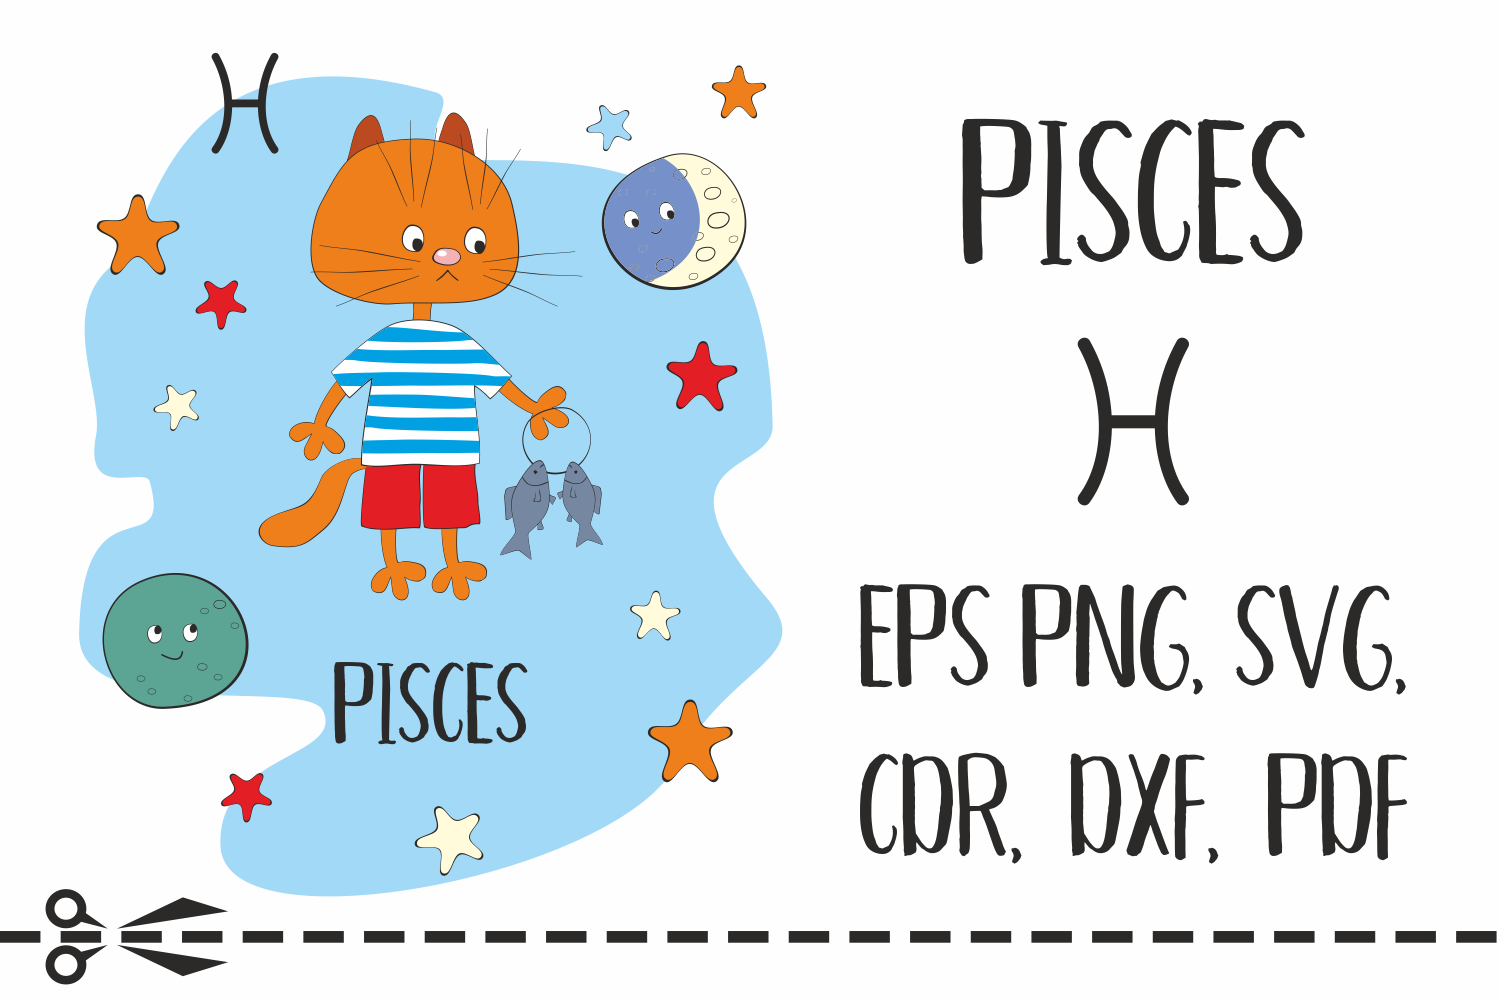 Download Free Pisces Zodiac Sign With Funny Cat Graphic By Olga Belova for Cricut Explore, Silhouette and other cutting machines.